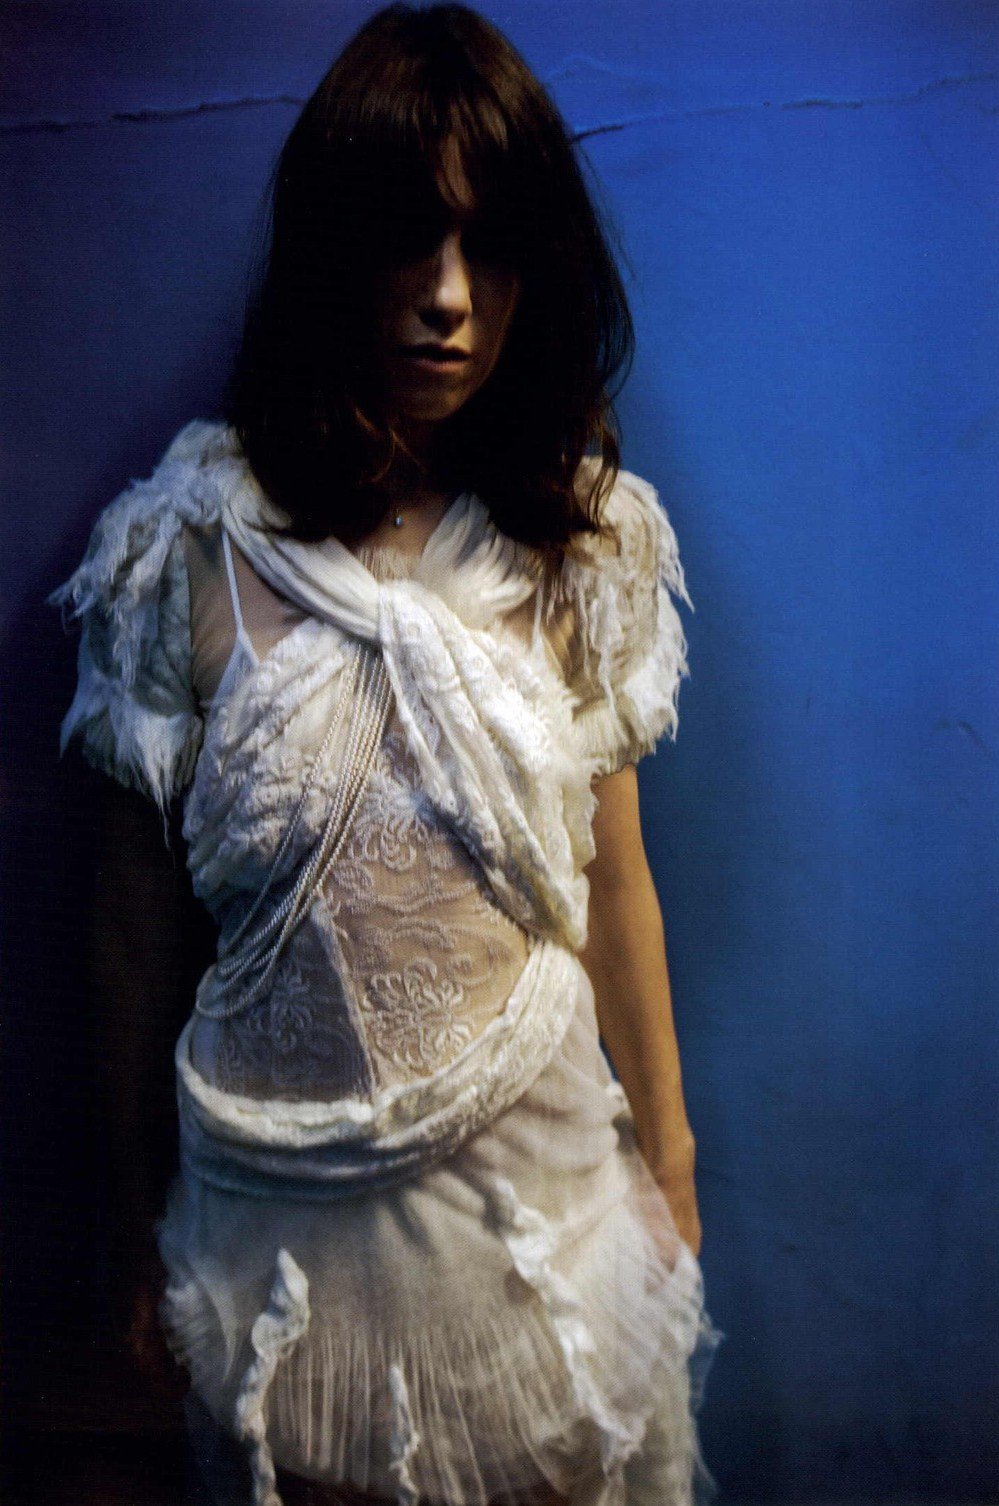 NAN GOLDIN CHARLOTTE GAINSBOURG LULA MAGAZINE FALL WINTER 2010-2011